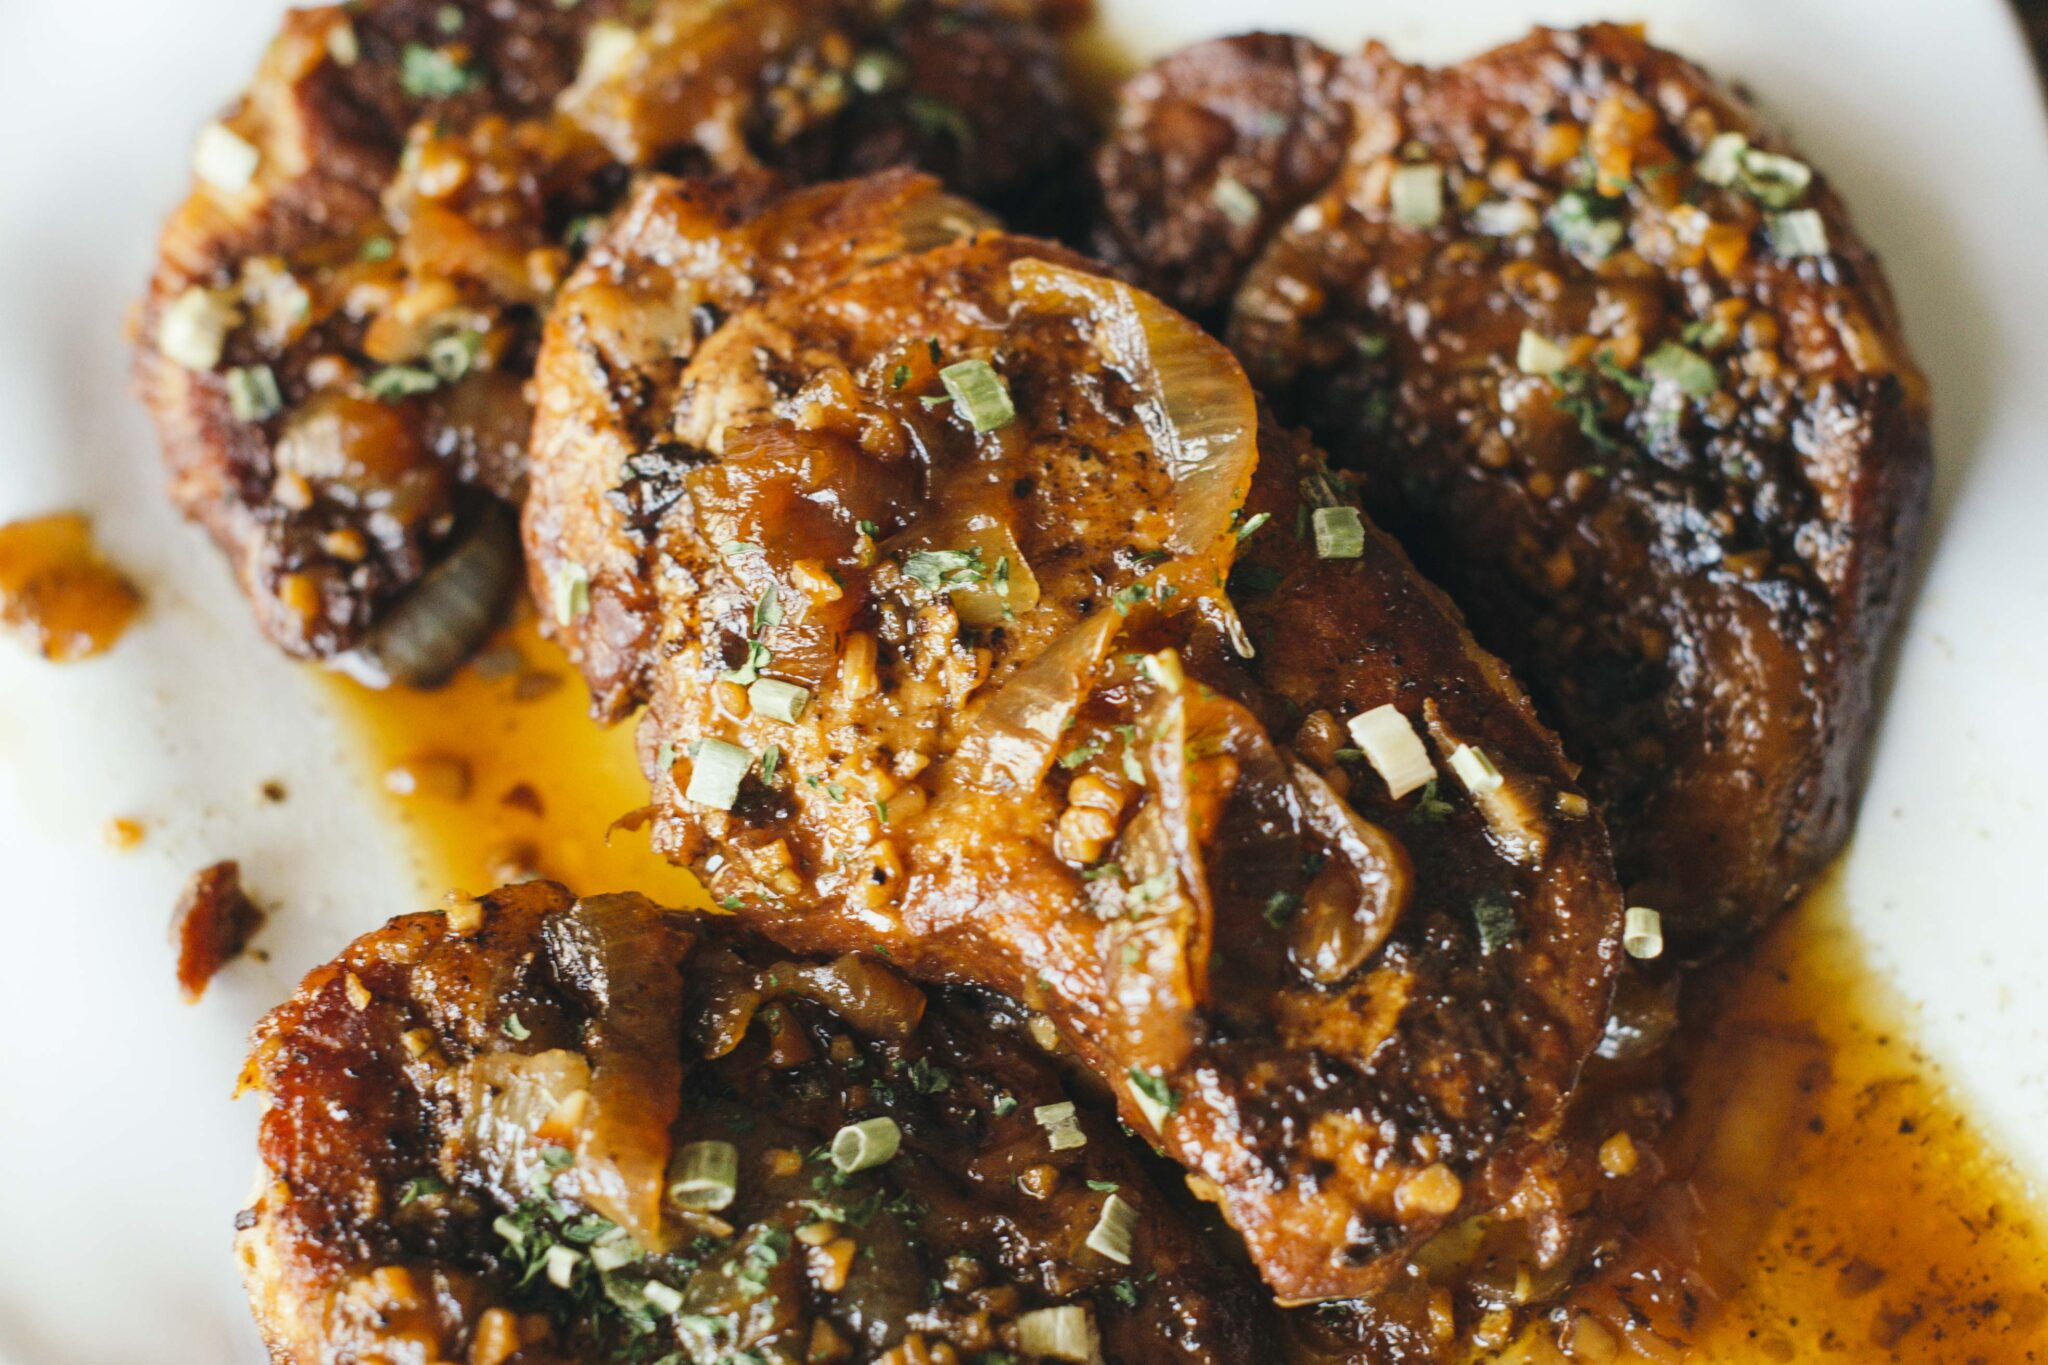 Instapot Honey Balsamic Paleo Pork Chops add intrigue to your routine while still being ready in under 30 minutes.